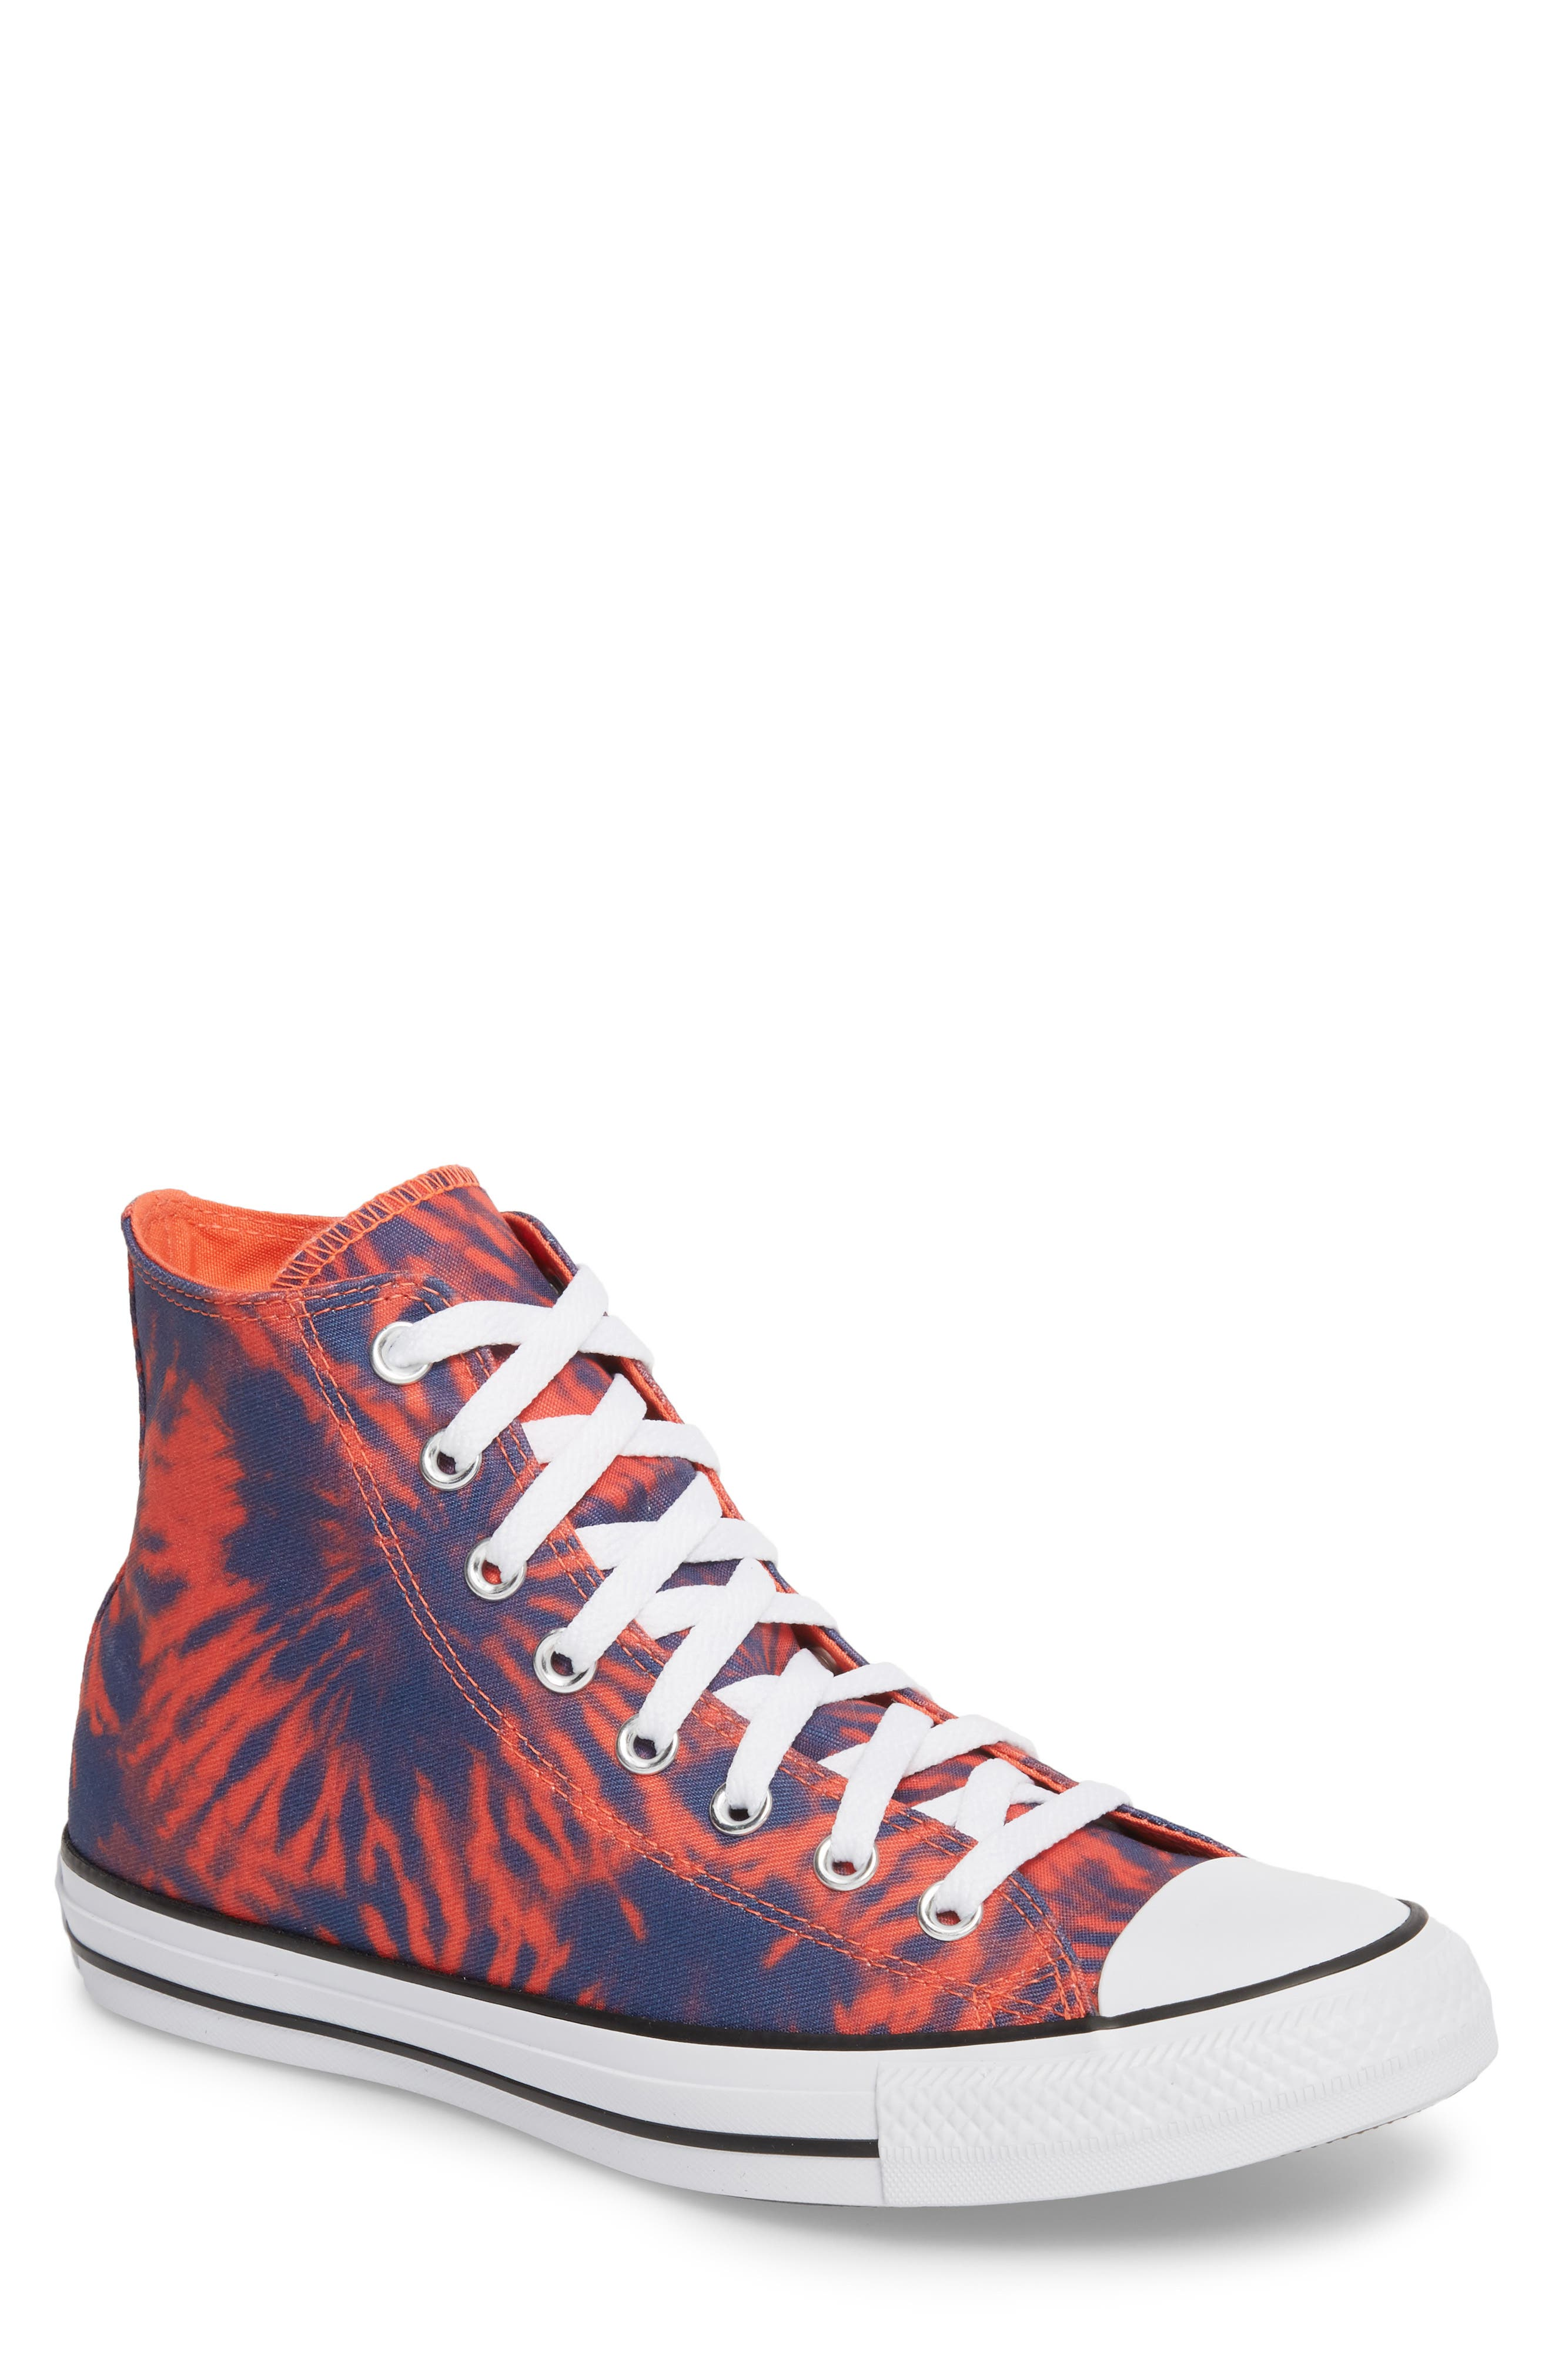 Chuck Taylor<sup>®</sup> All Star<sup>®</sup> Tie Dye High Top Sneaker,                         Main,                         color,